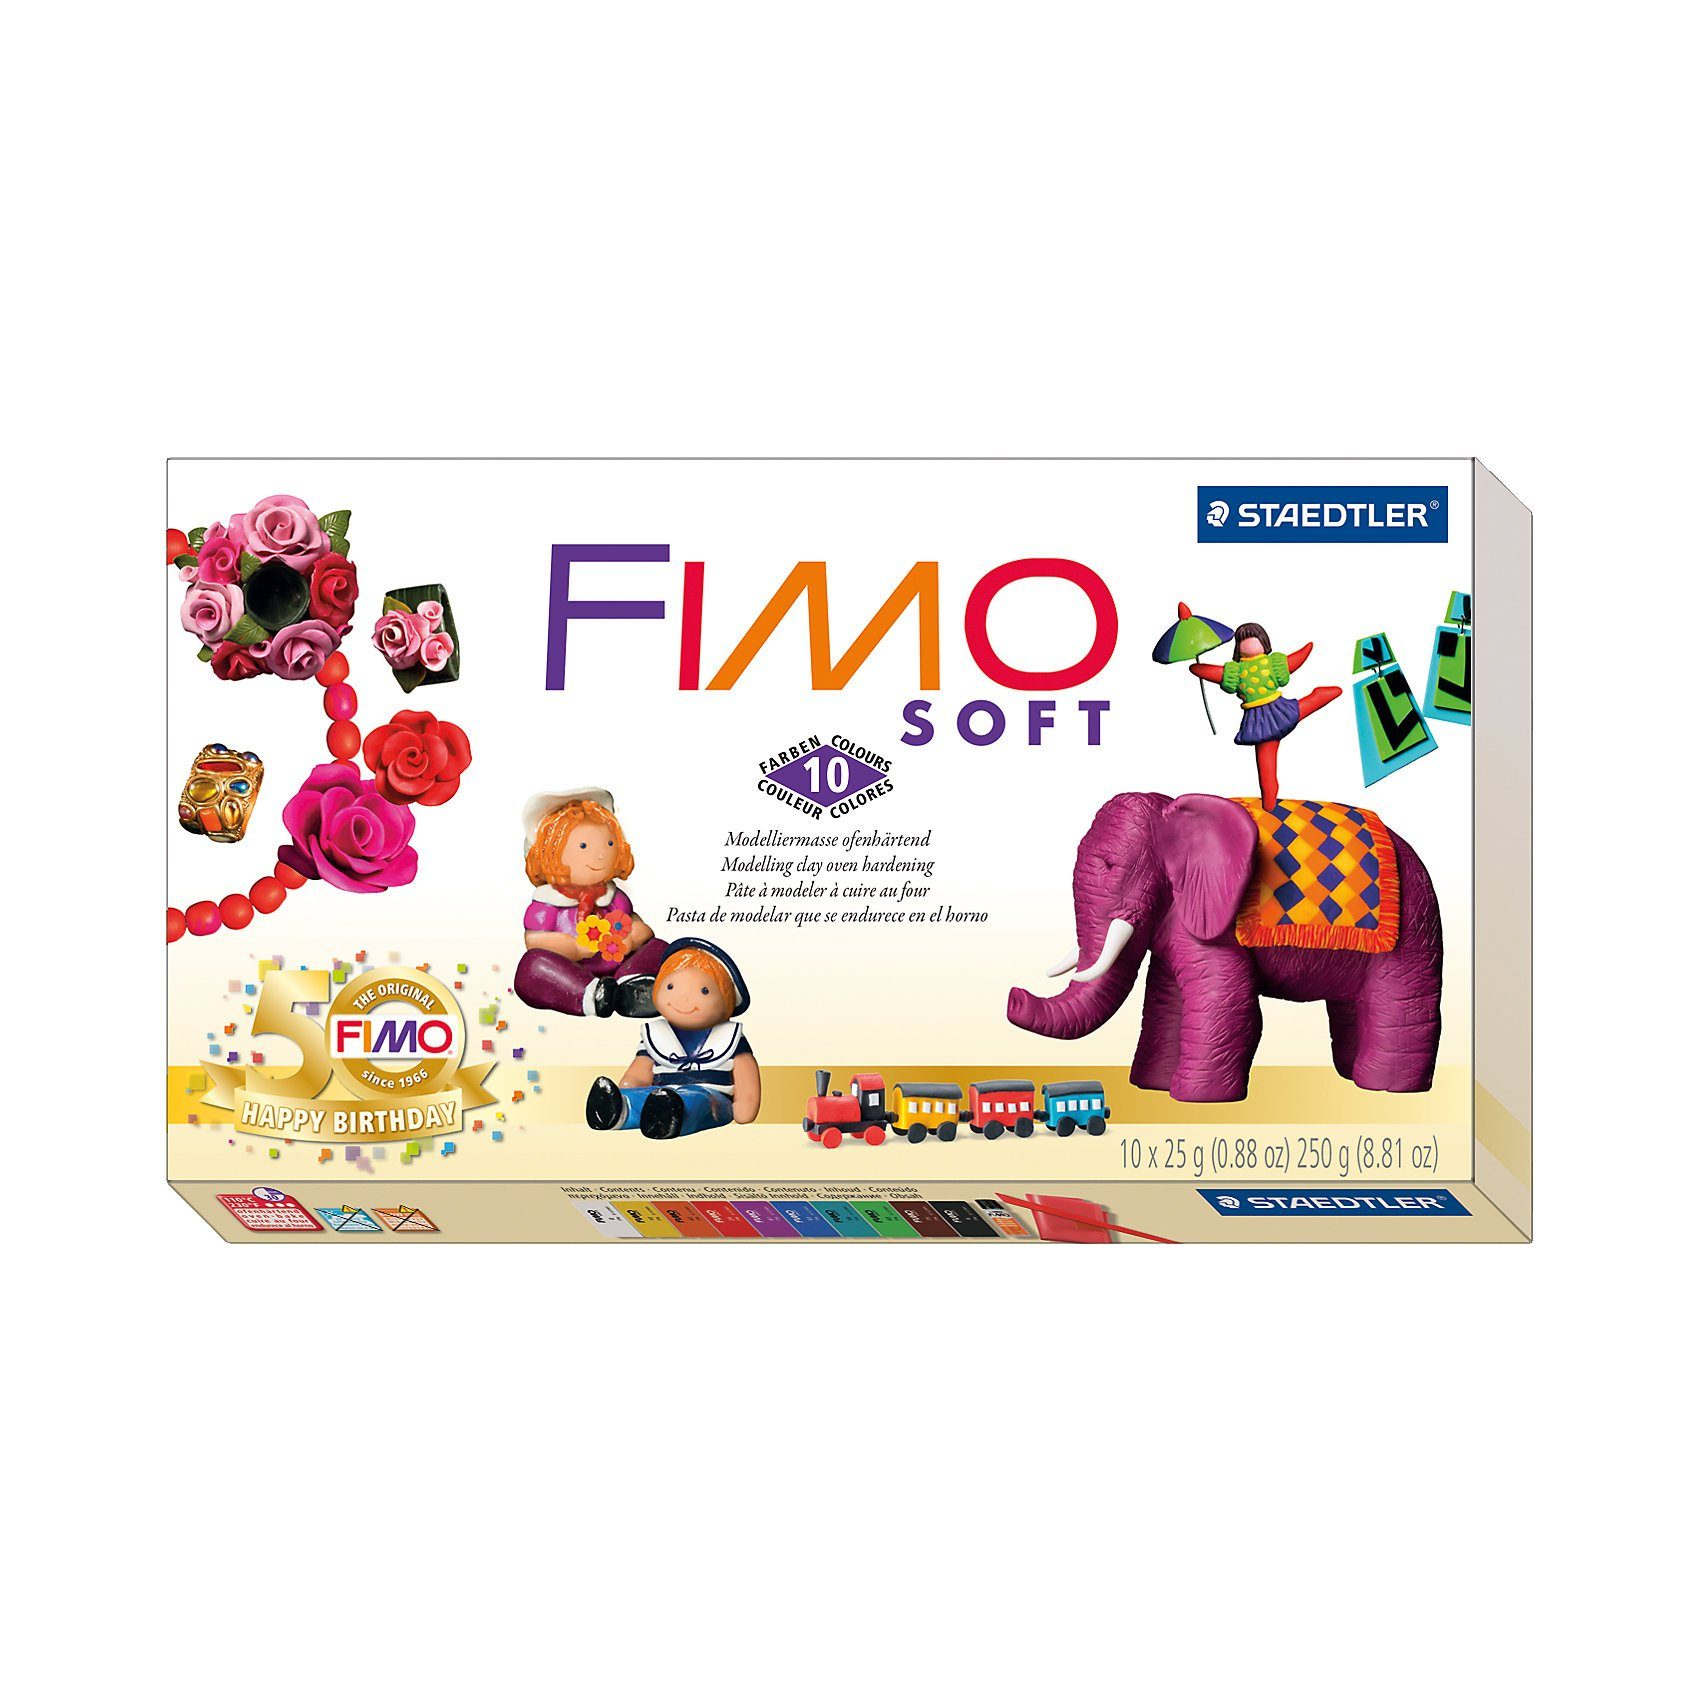 FIMO soft Limited Edition Retro Design, 10 x 25 g